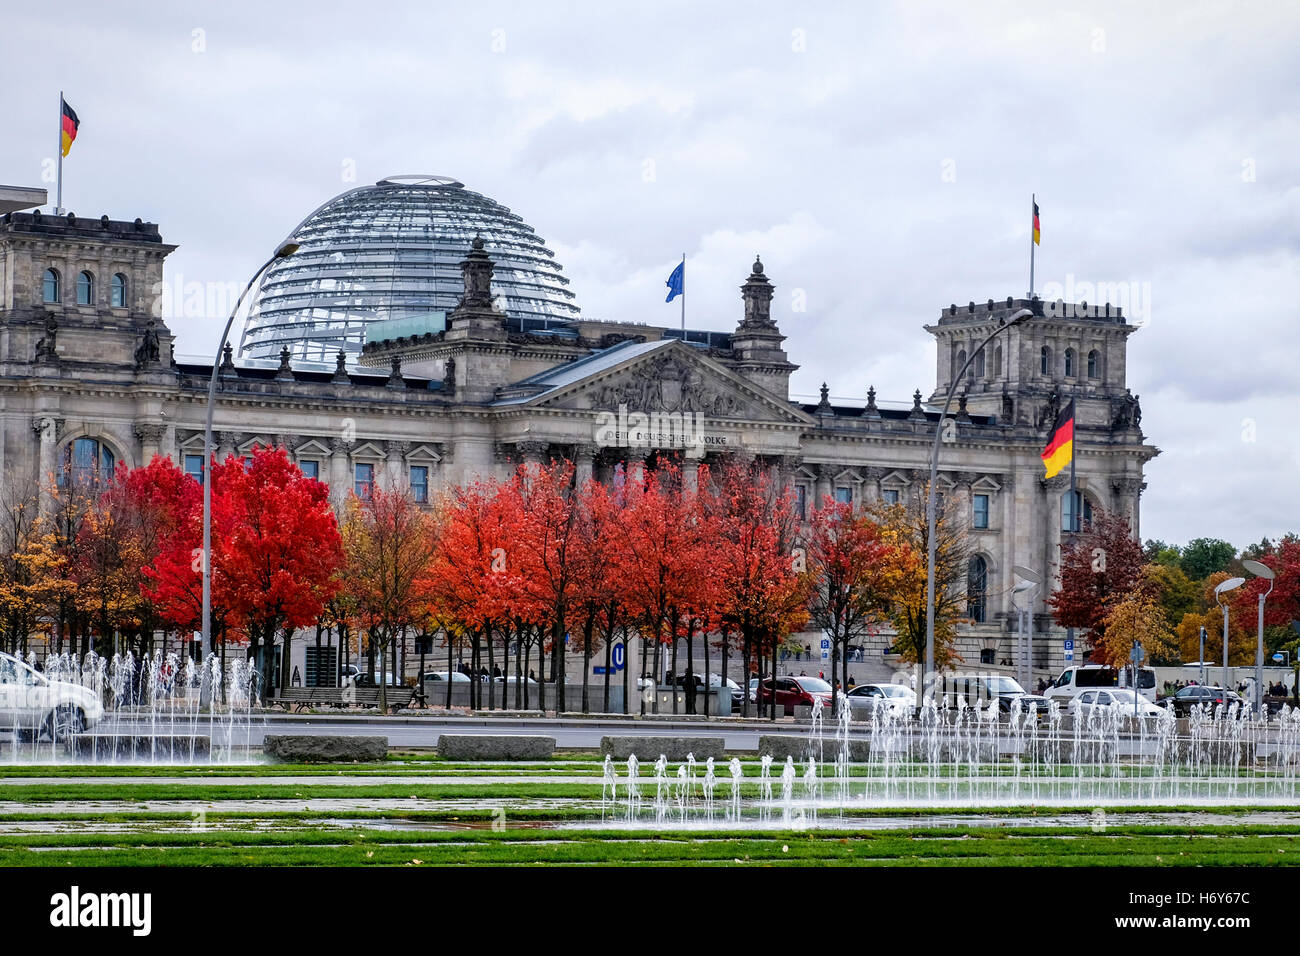 Berlin, Mitte. Reichstag Government Building In Autumn. German Federal Parliament Bundestag, Norman Foster Dome Stock Photo